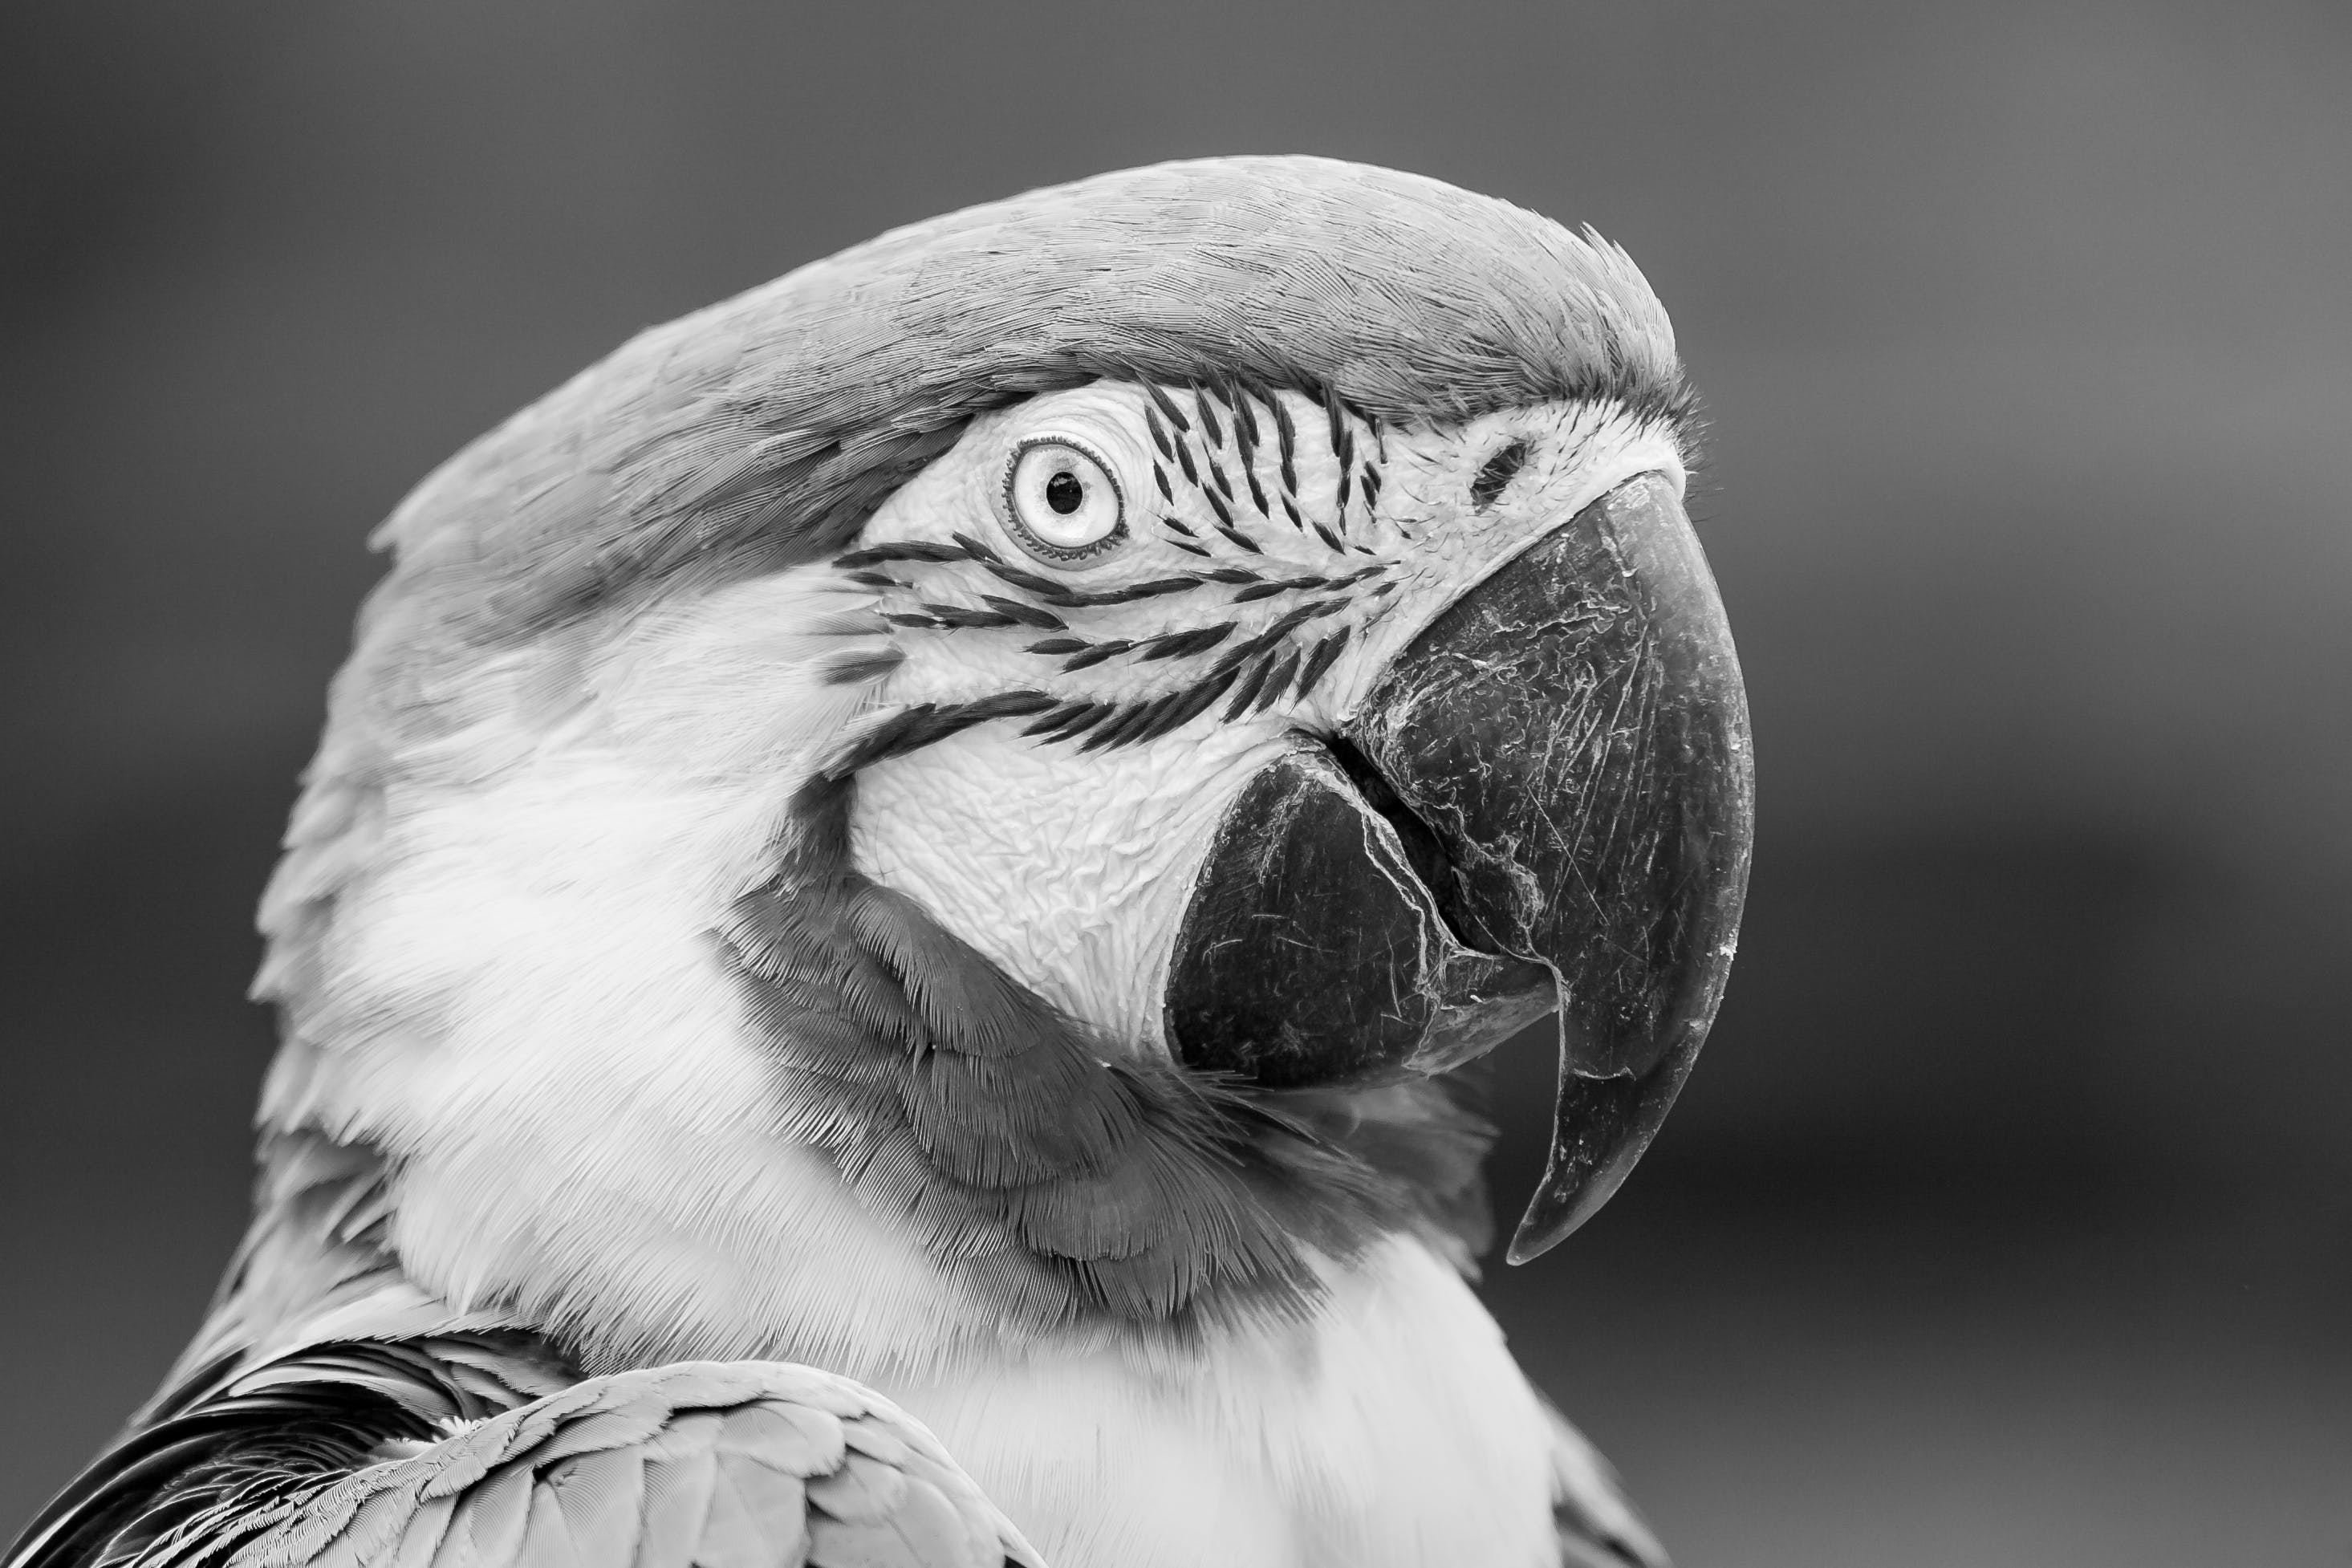 Grayscale Photography of Parrot